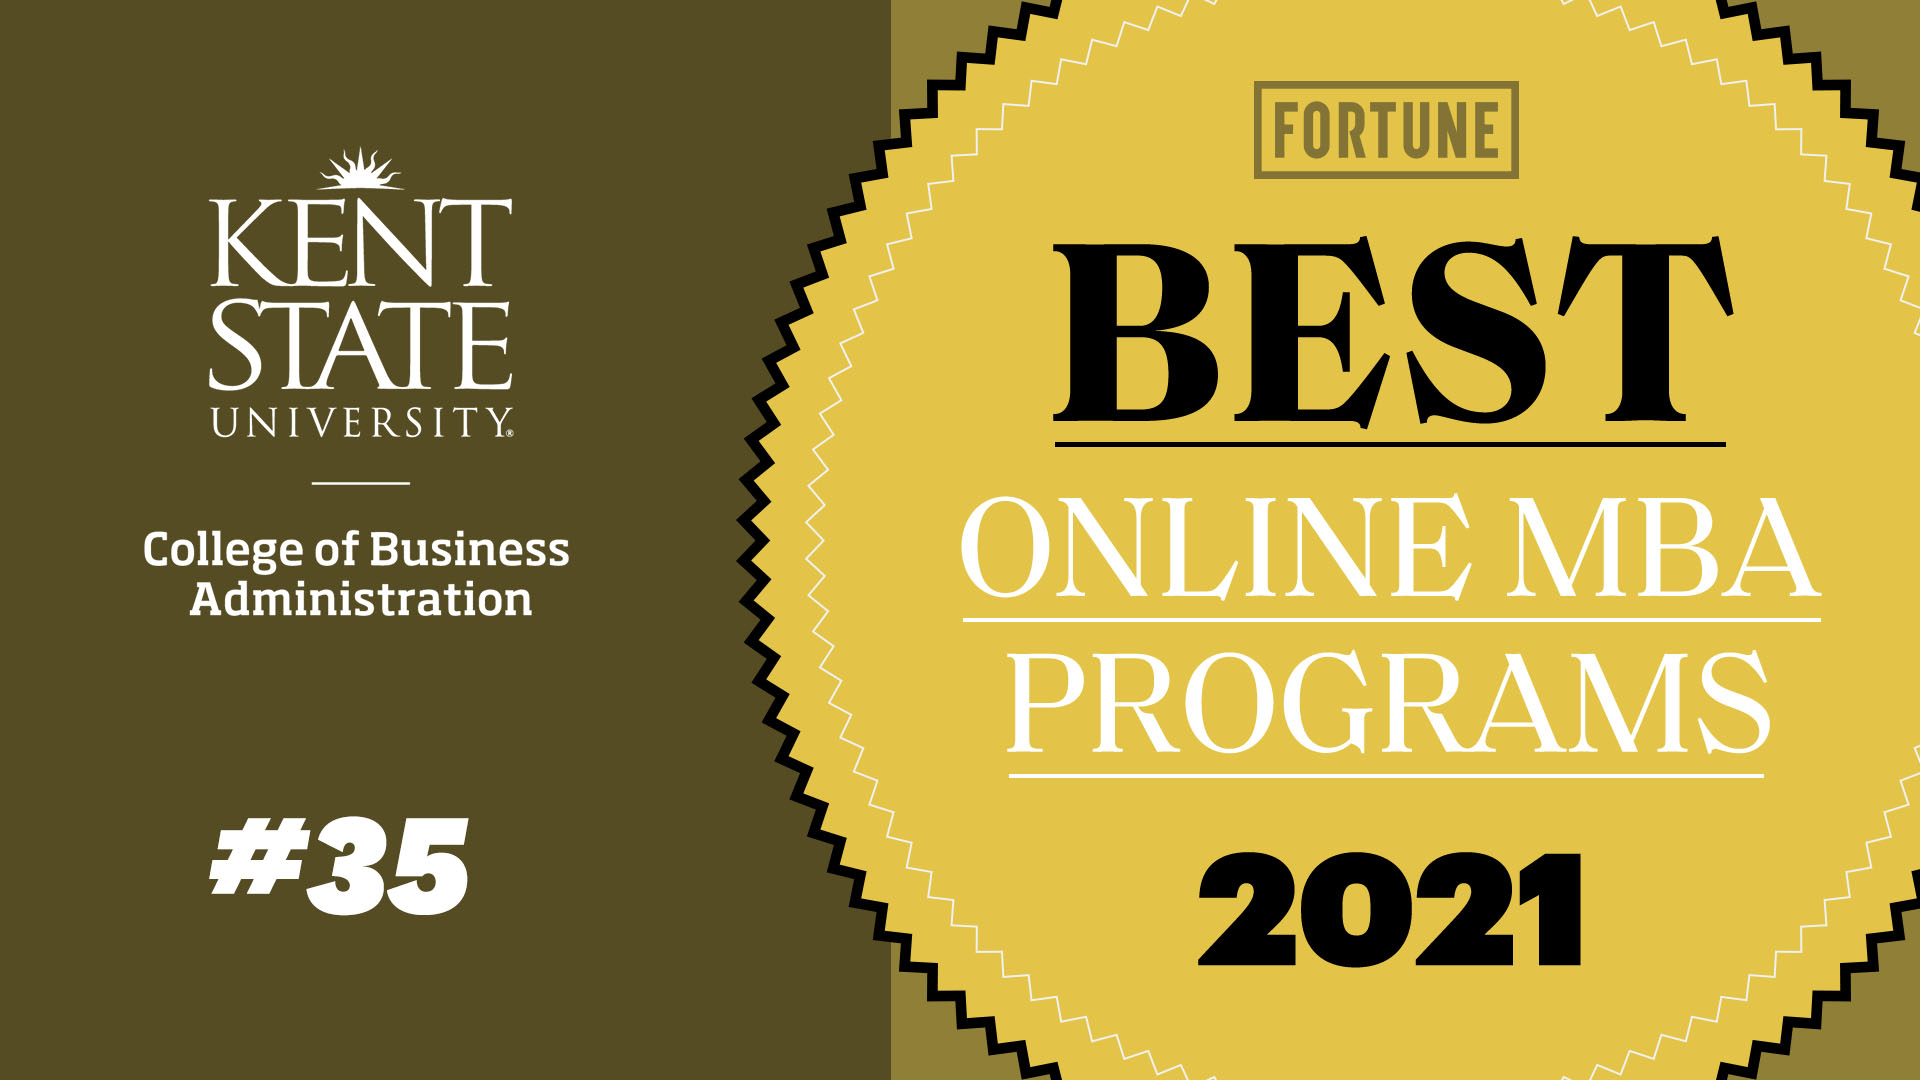 Kent State University Online MBA Master Business Administration Fortune Ranking